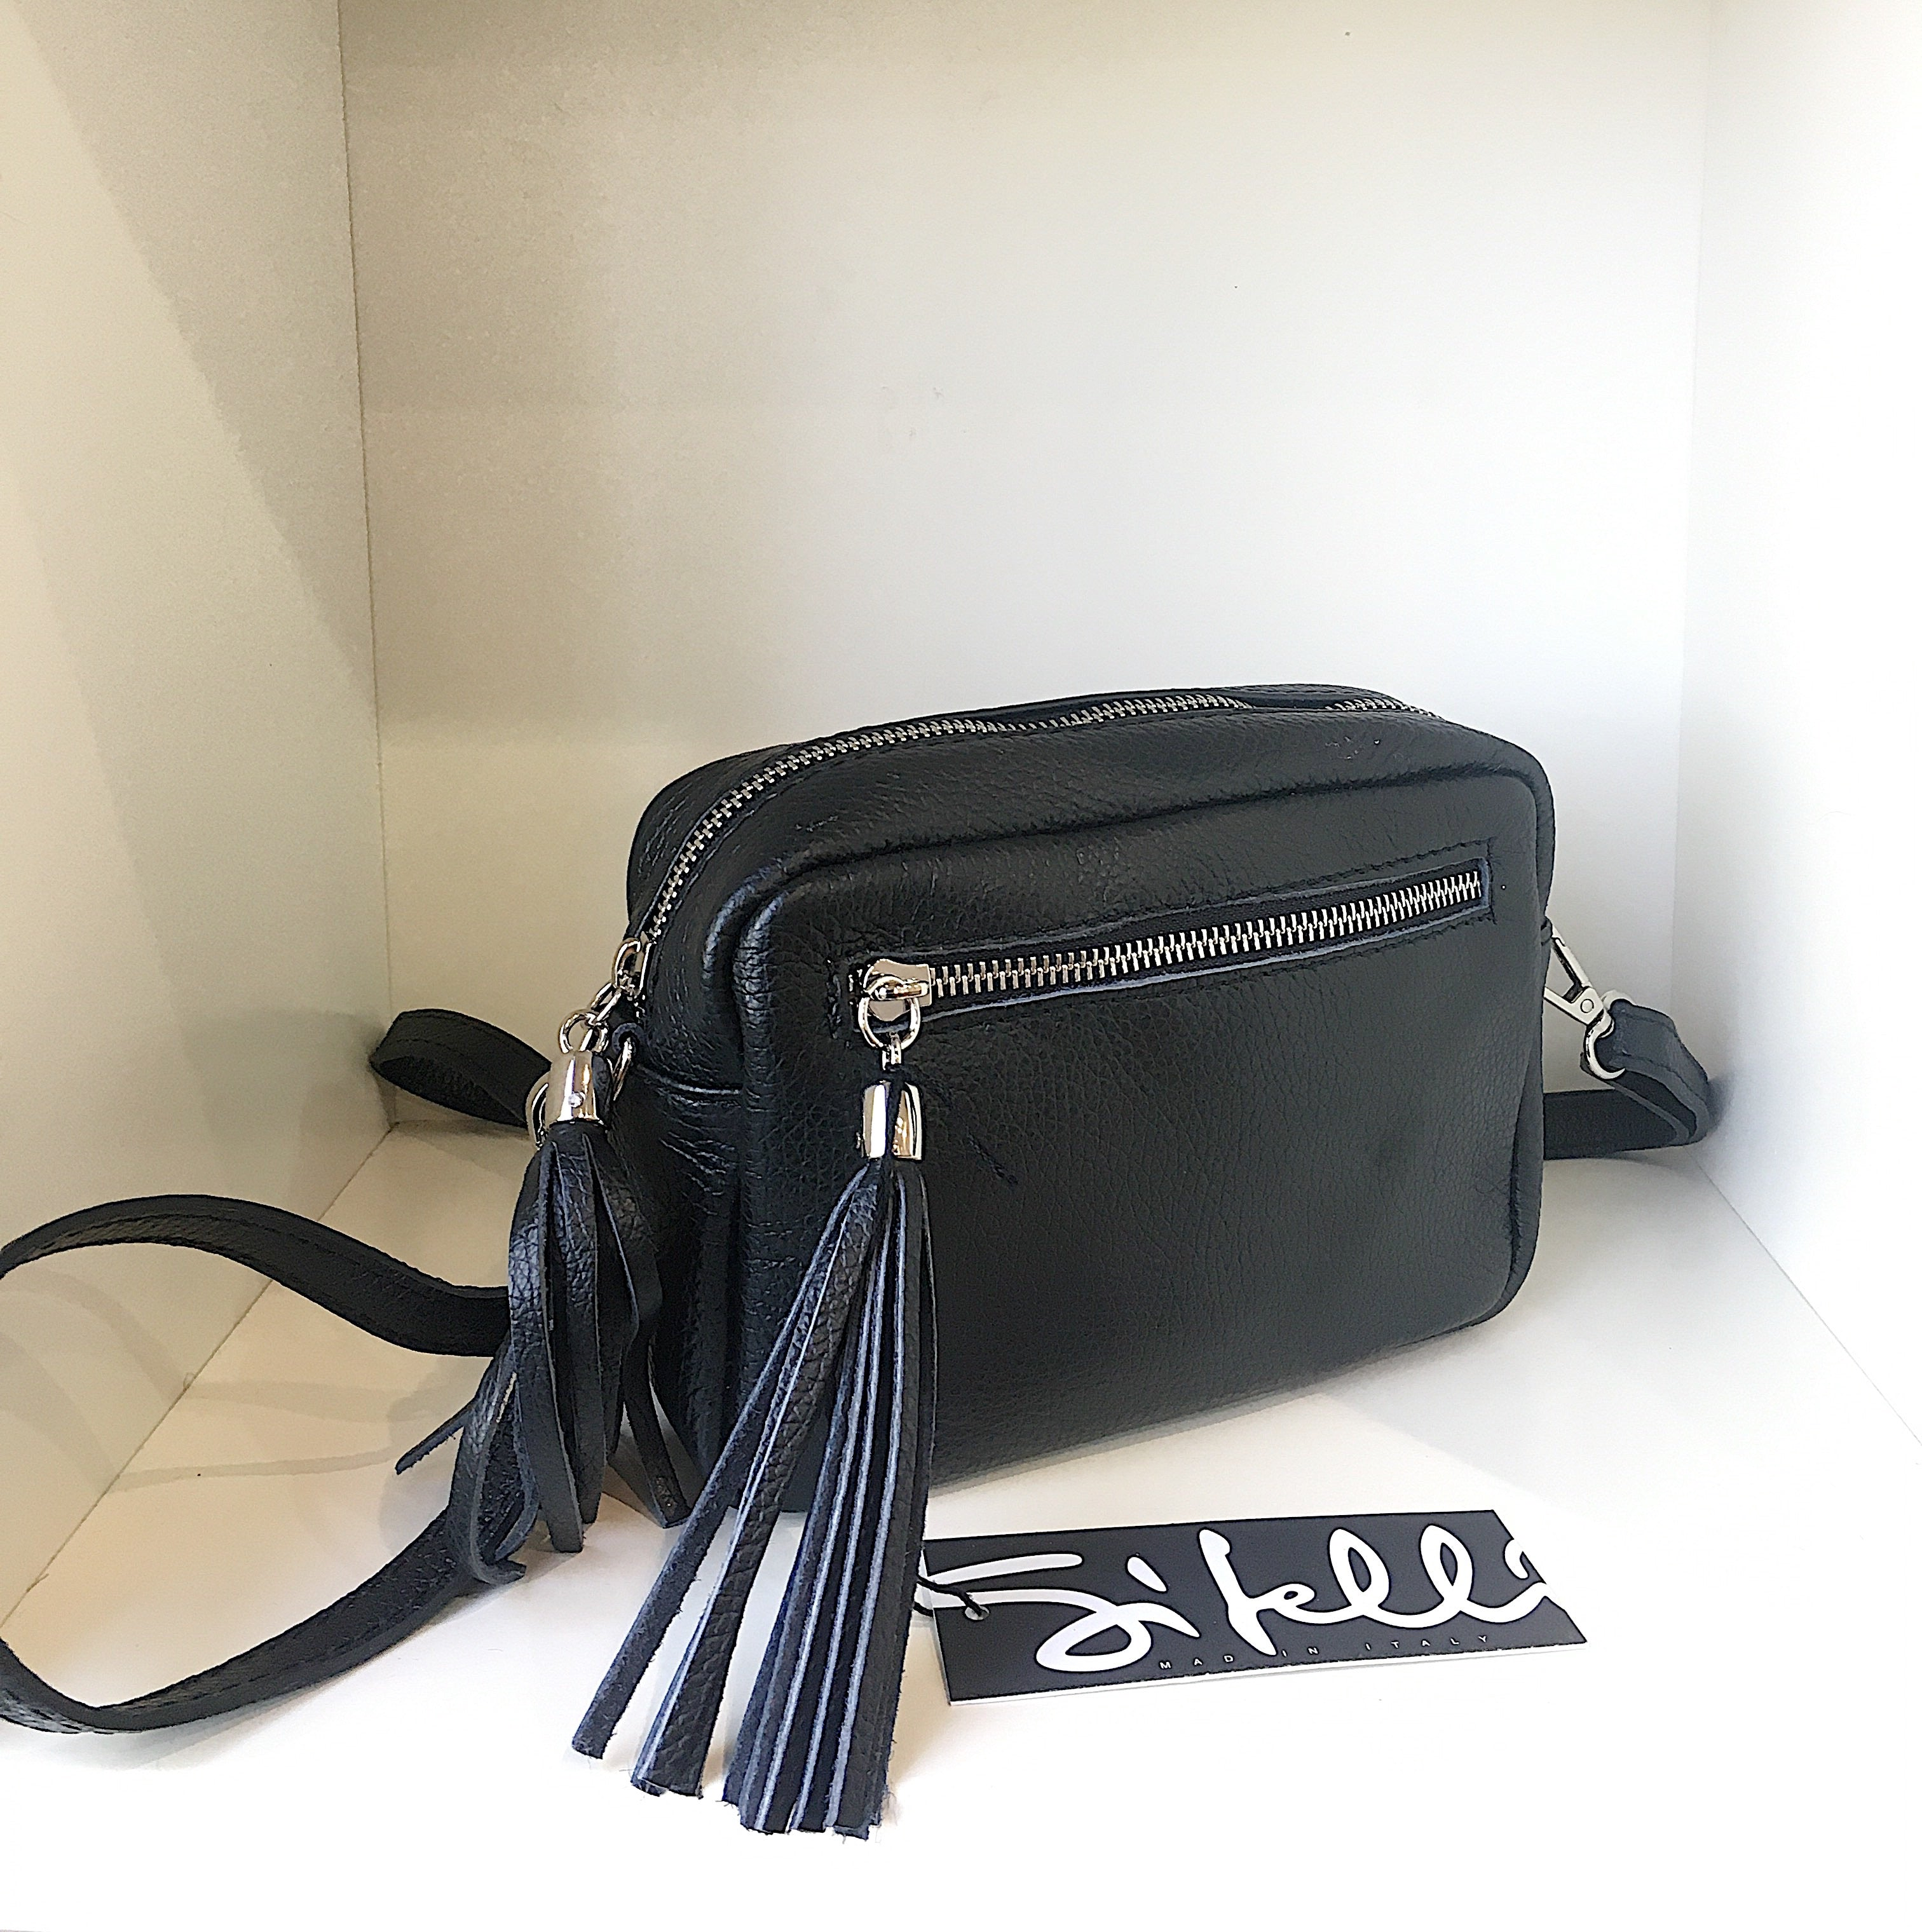 Sitelli Tassle Italian Leather Bag - Black